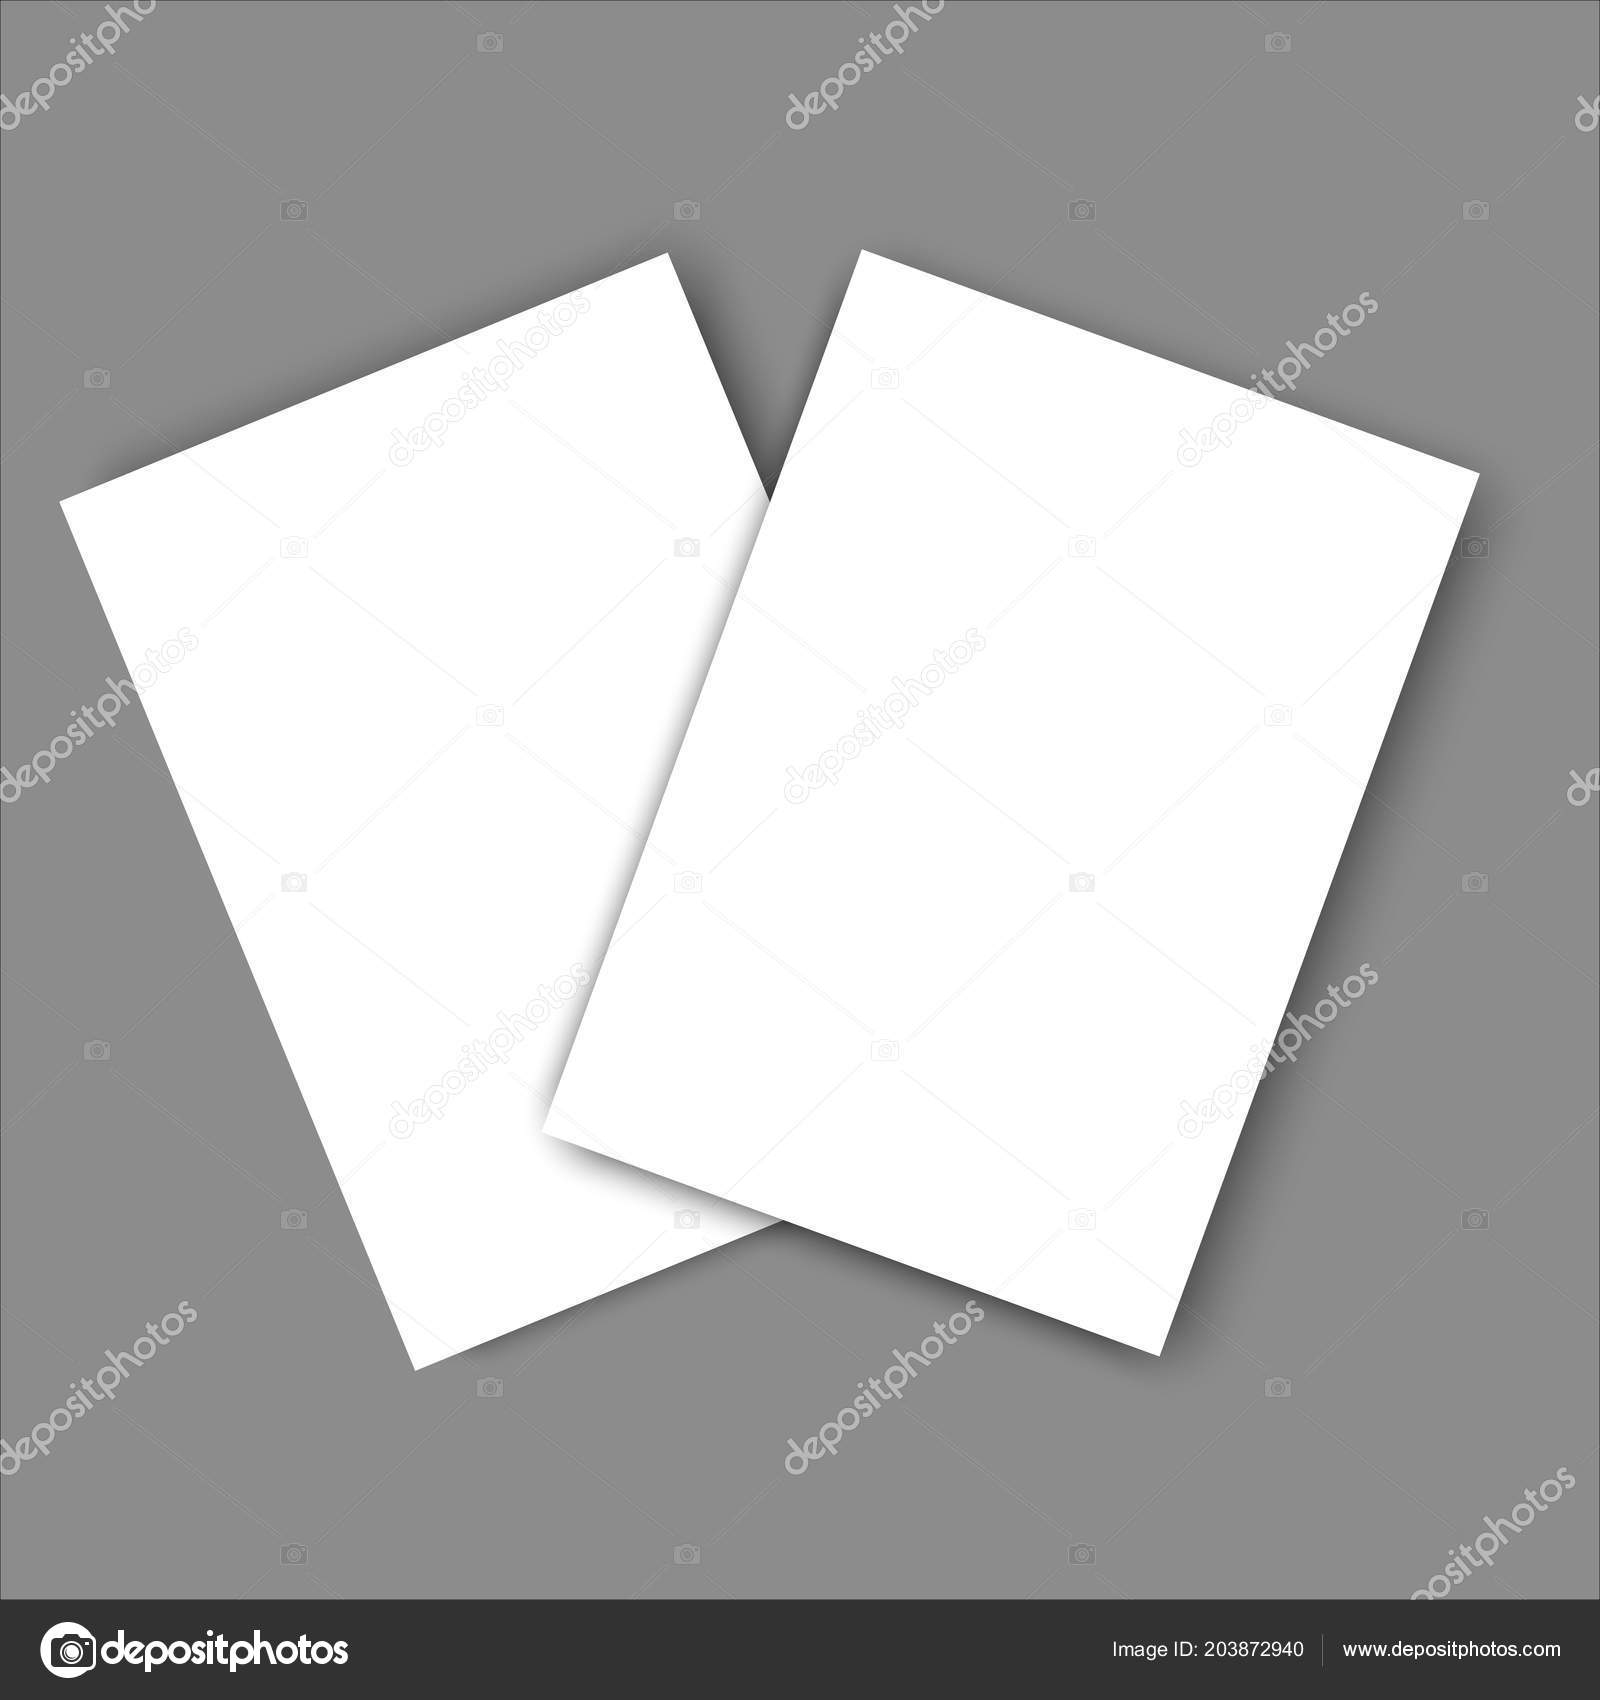 realistic models leaves shadow blank template design isolated grey